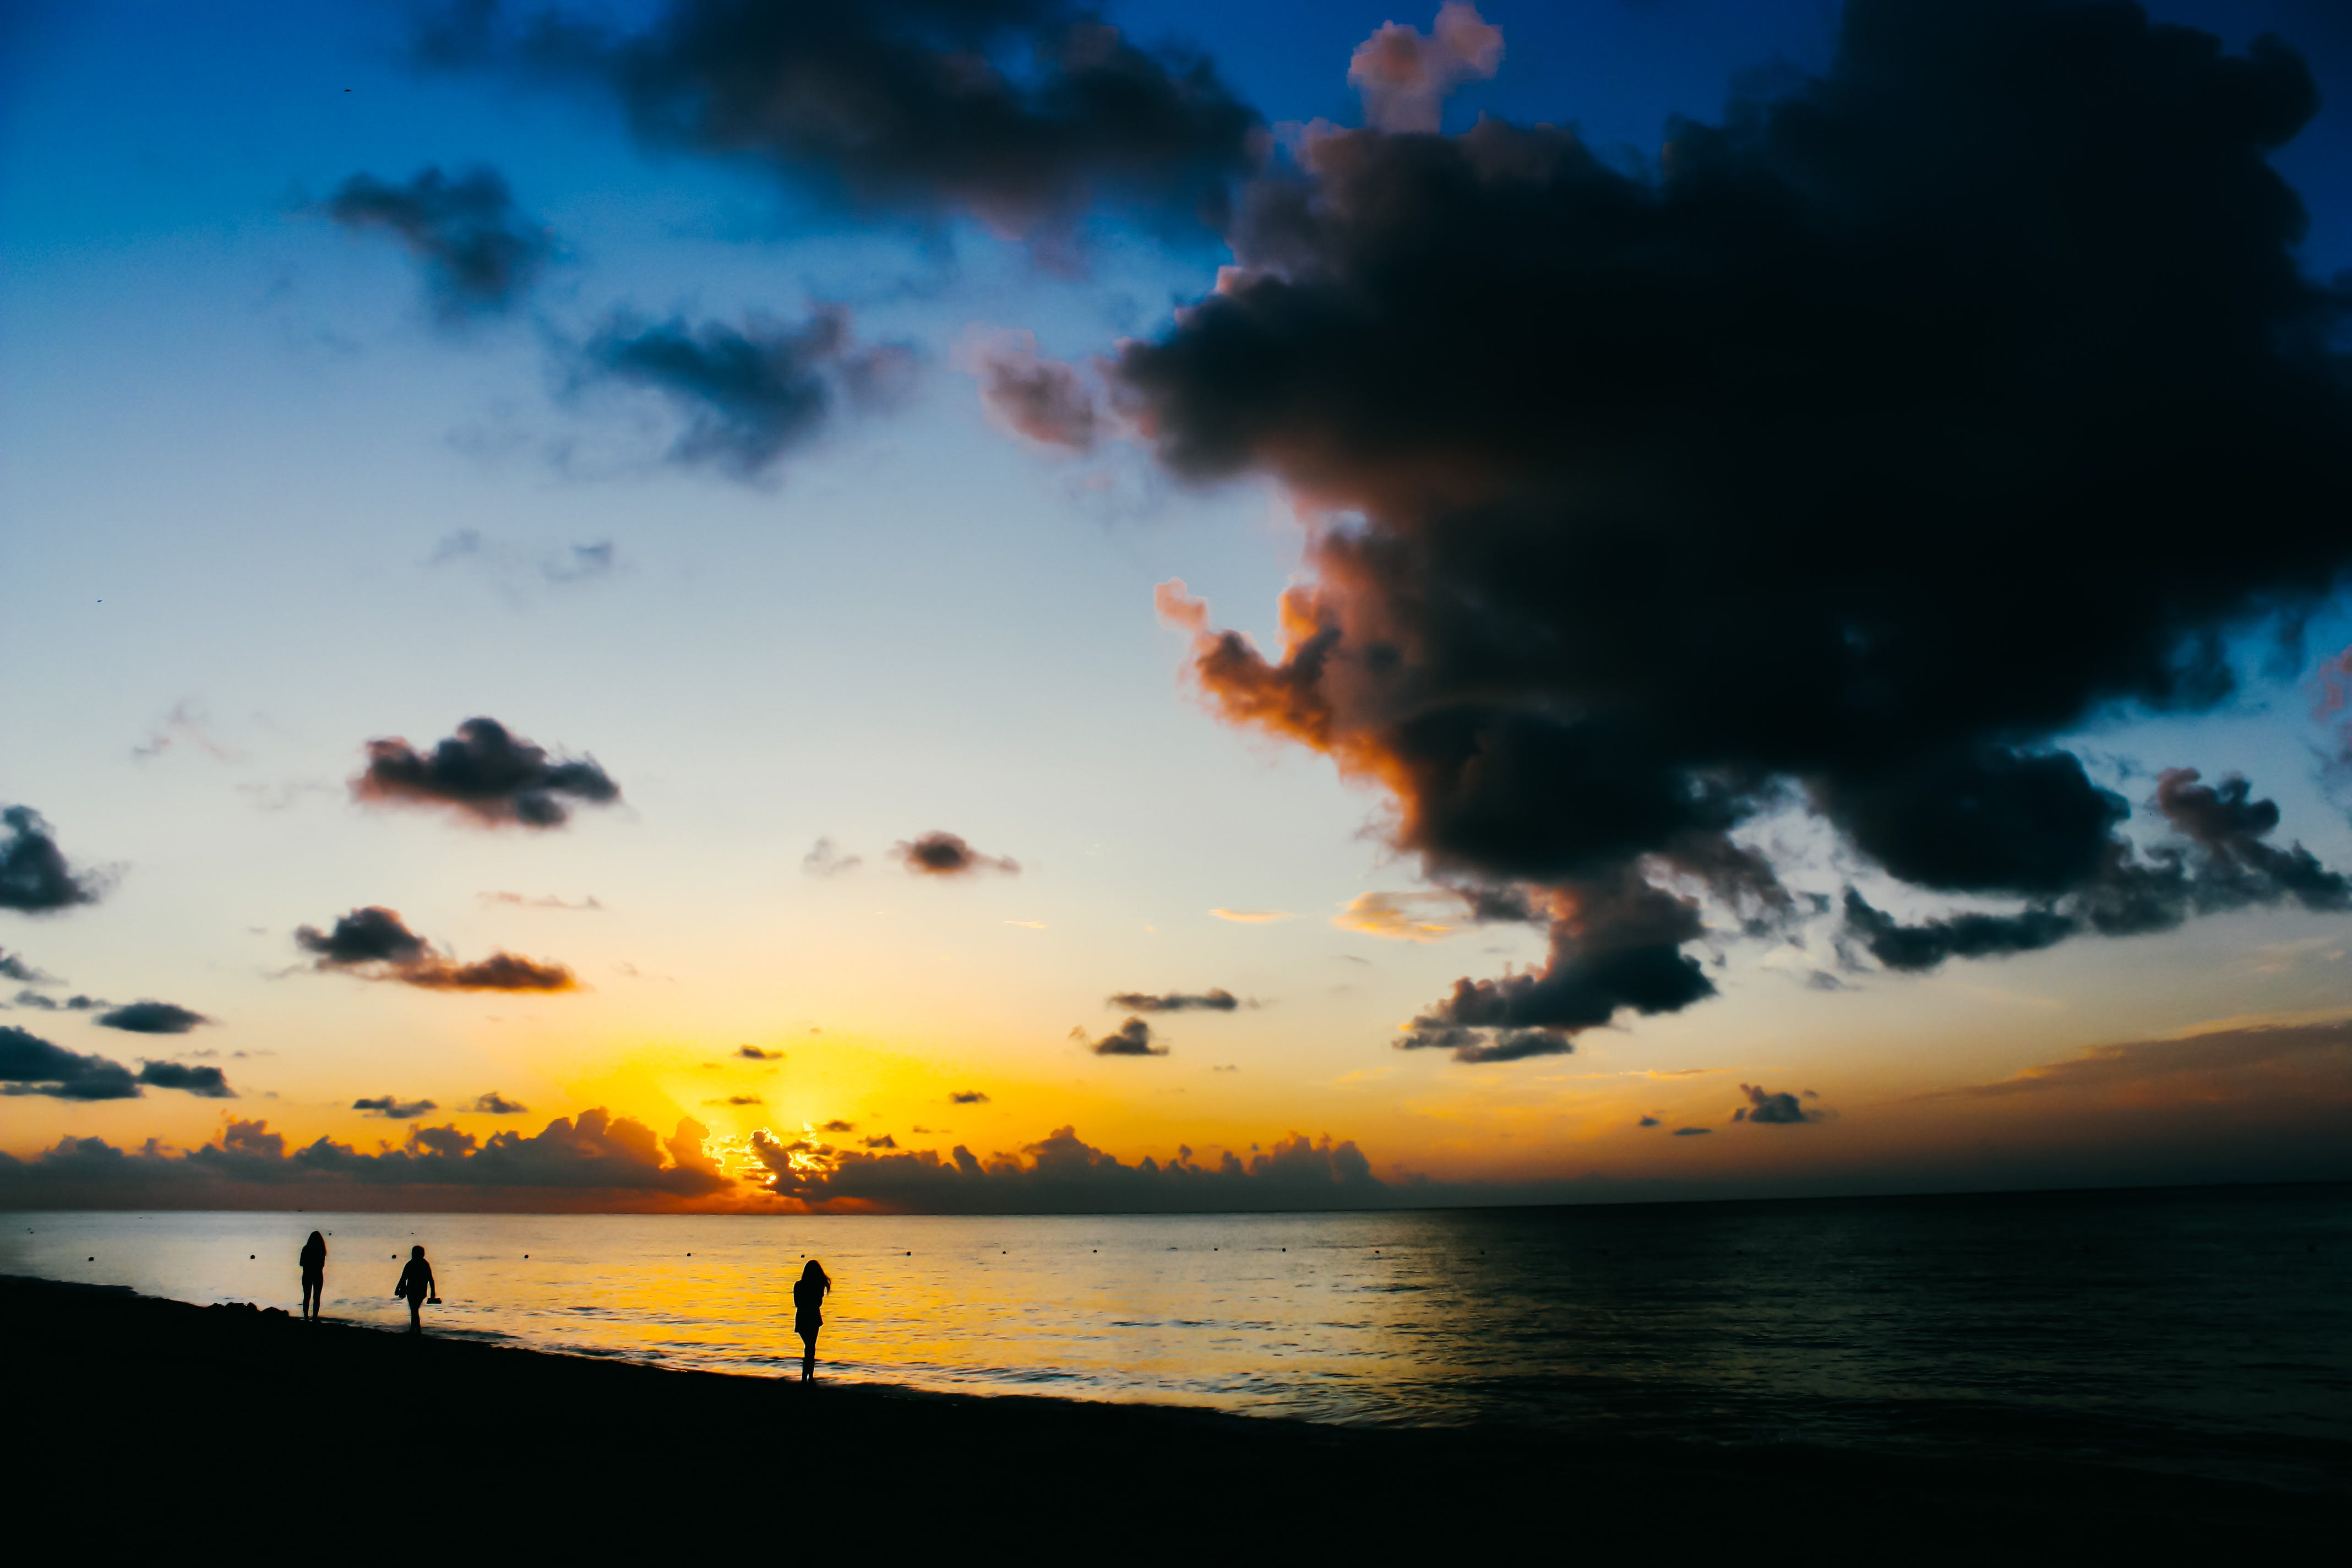 People Standing on Seashore during Sunset